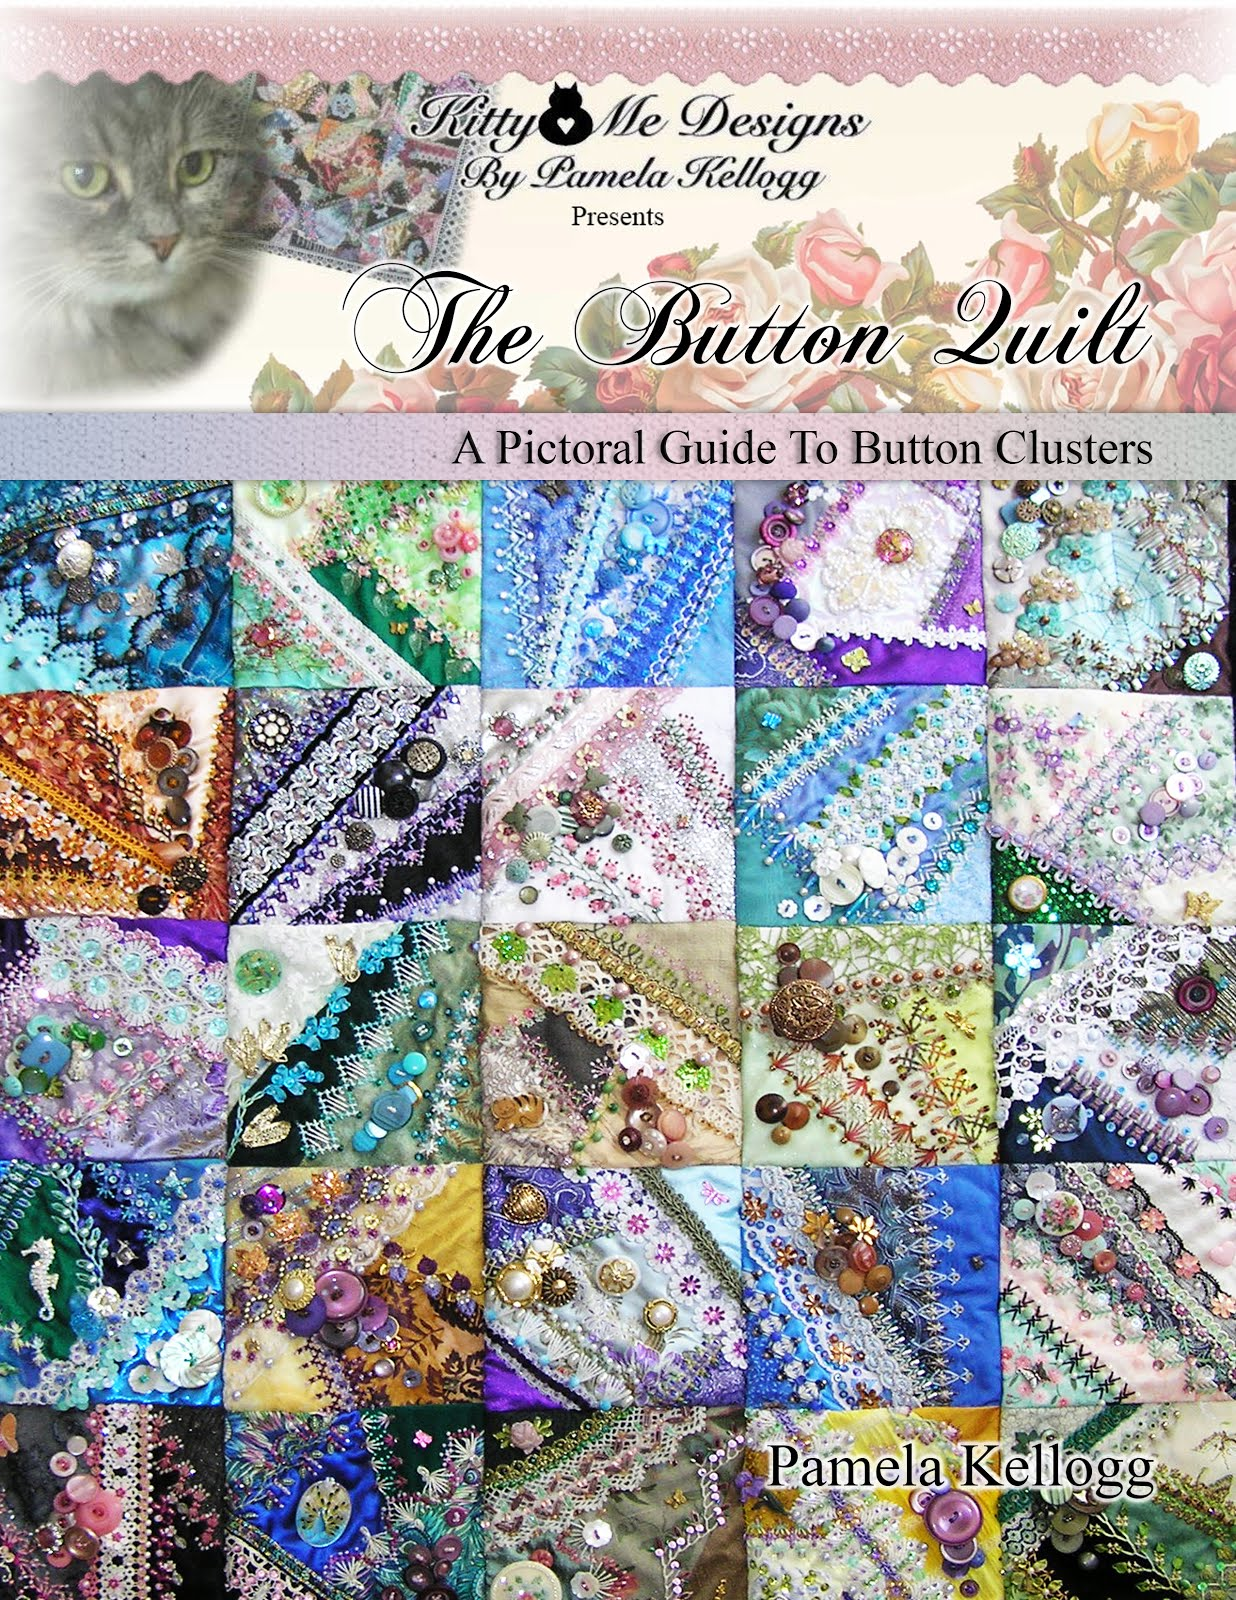 The Button Quilt - A Pictorial Guide To Button Clusters